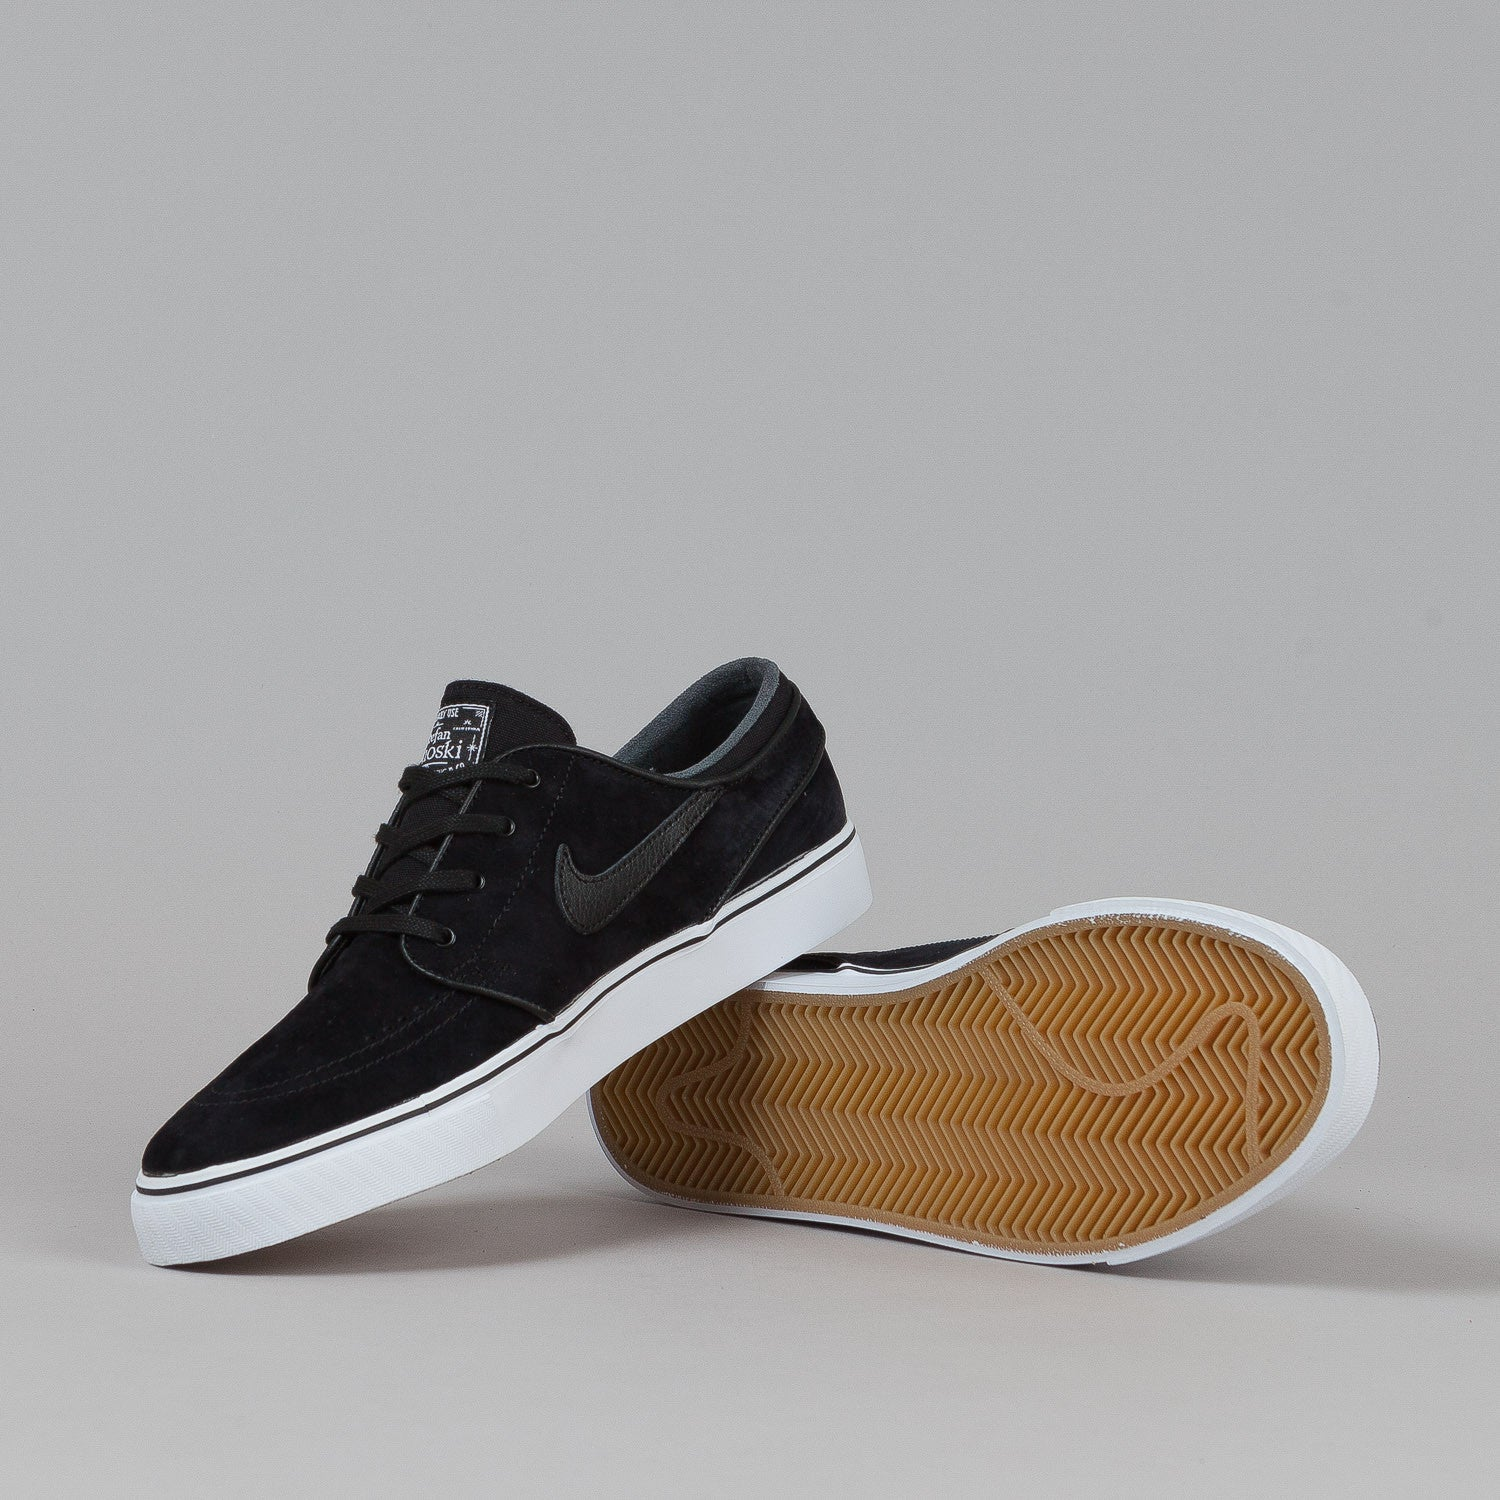 Nike SB Stefan Janoski SE Shoes Black / Black - White - Gum Light Brown